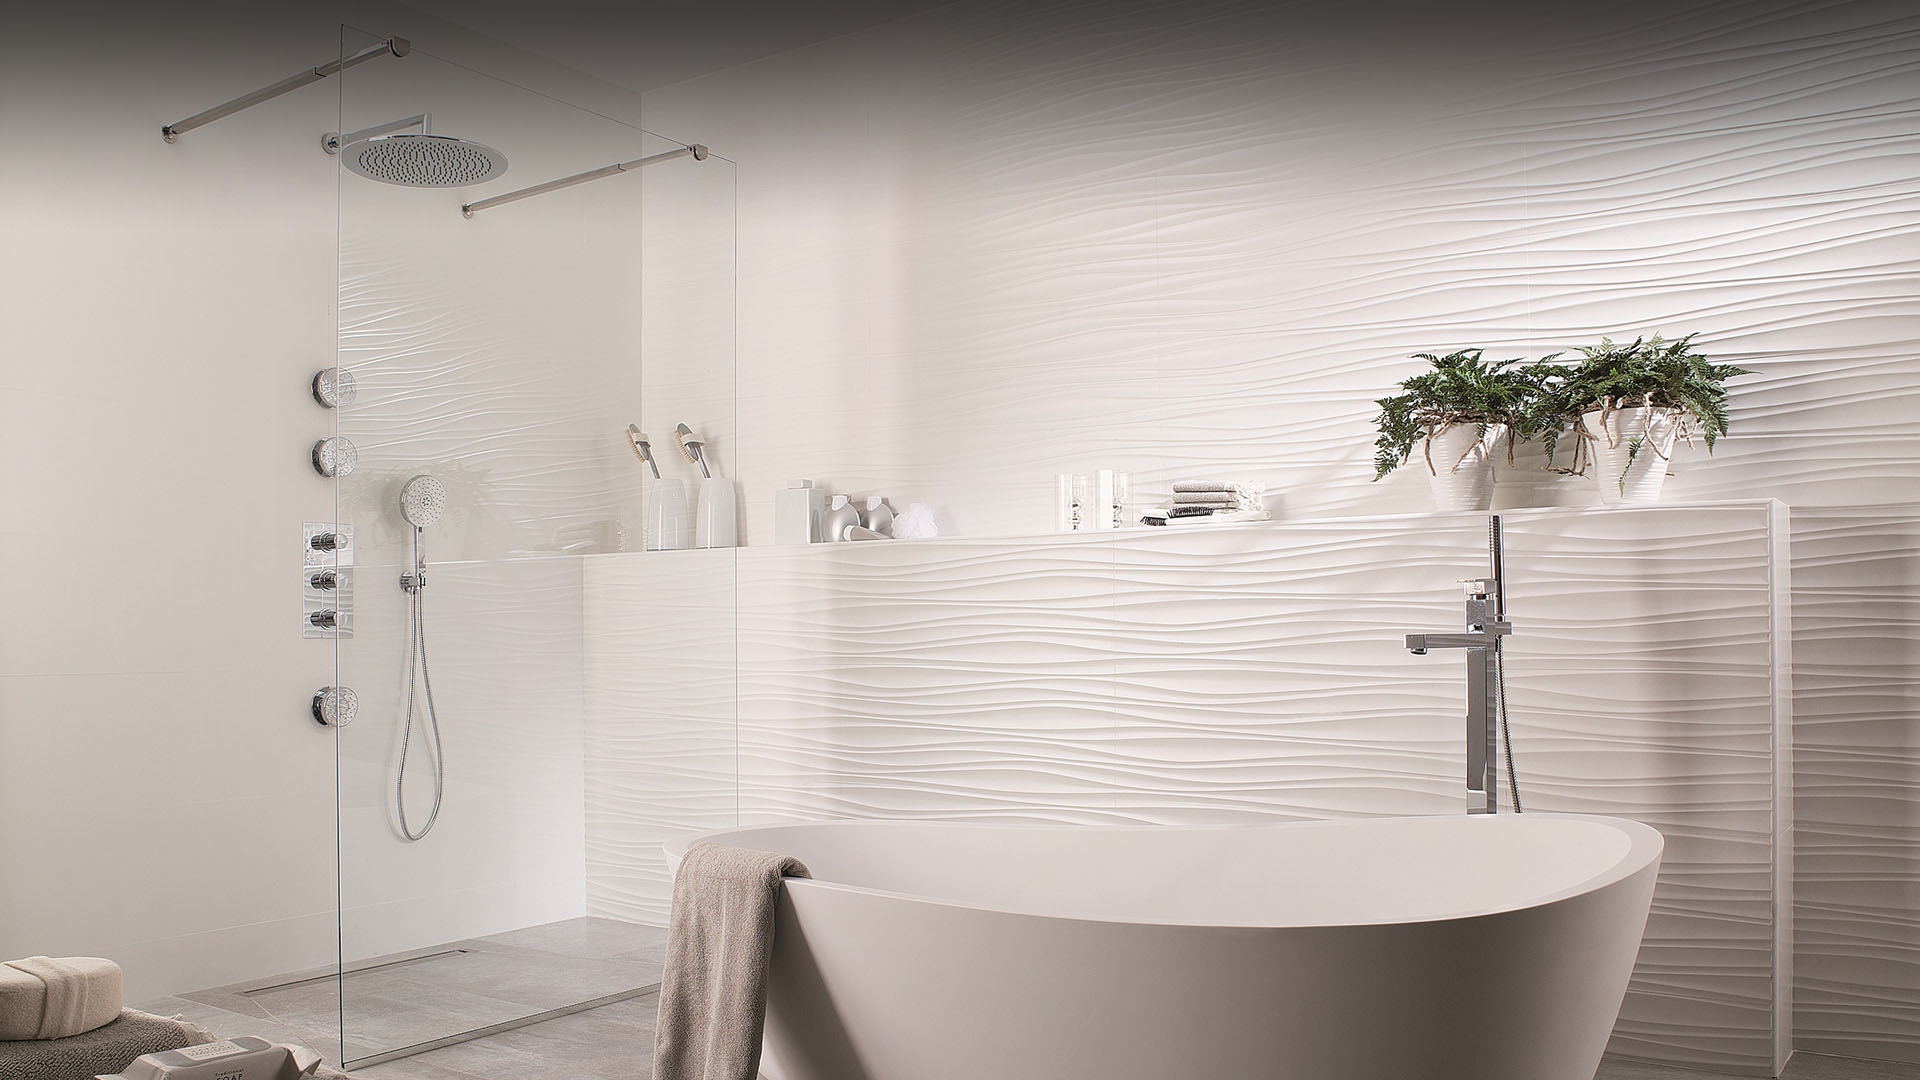 Ceramo tiles perth aims to offer the perth tile buying community ceramo tiles perth aims to offer the perth tile buying community a refreshing and innovative tile buying experience doublecrazyfo Gallery